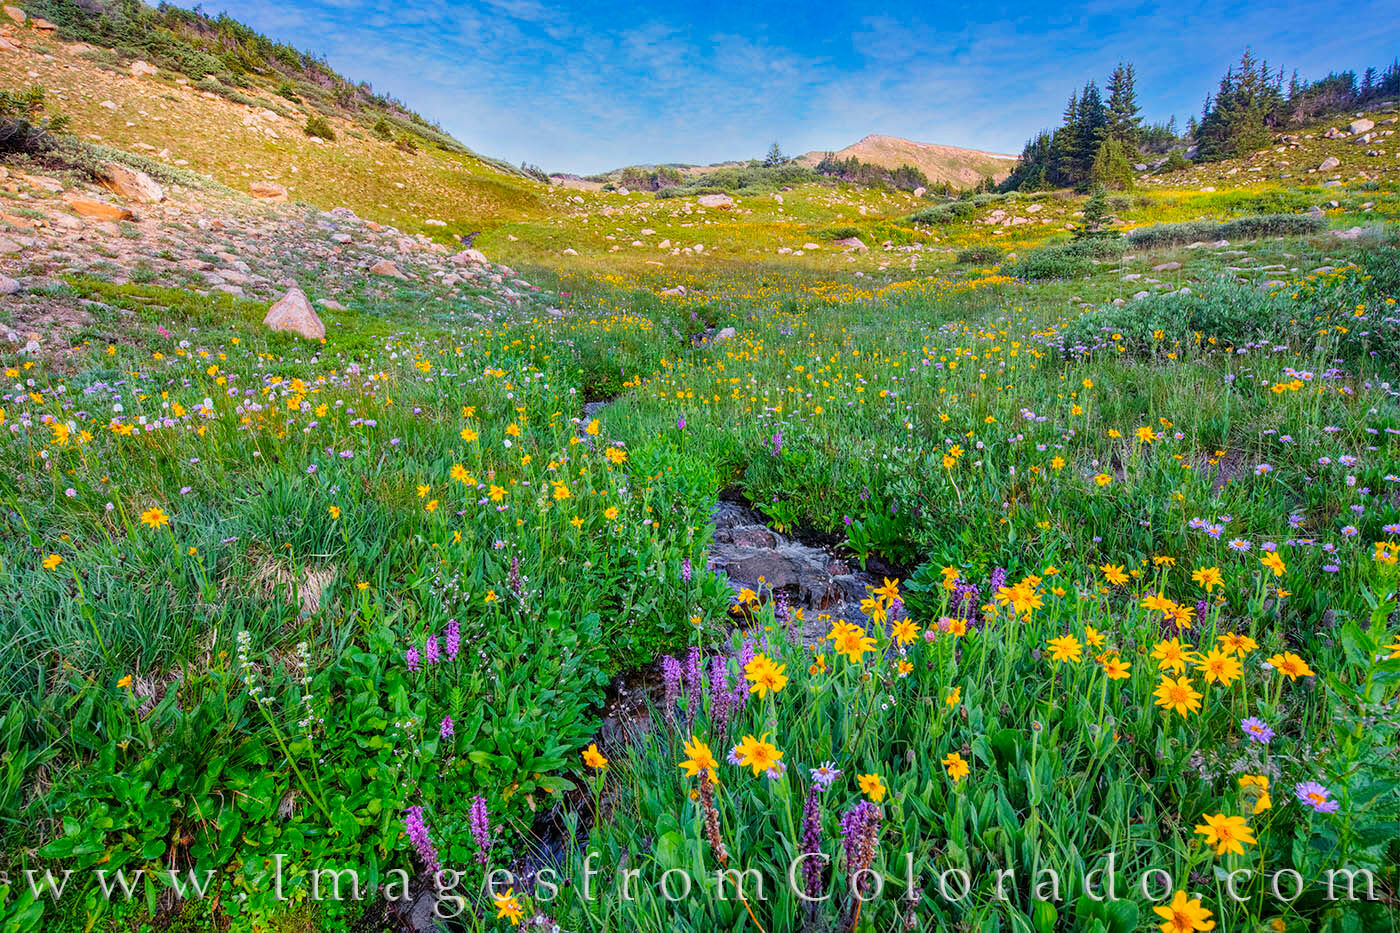 High up on Berthoud Pass, wildflowers of purple and yellow bloom along a small snow-melt stream. There is not a defined trail...